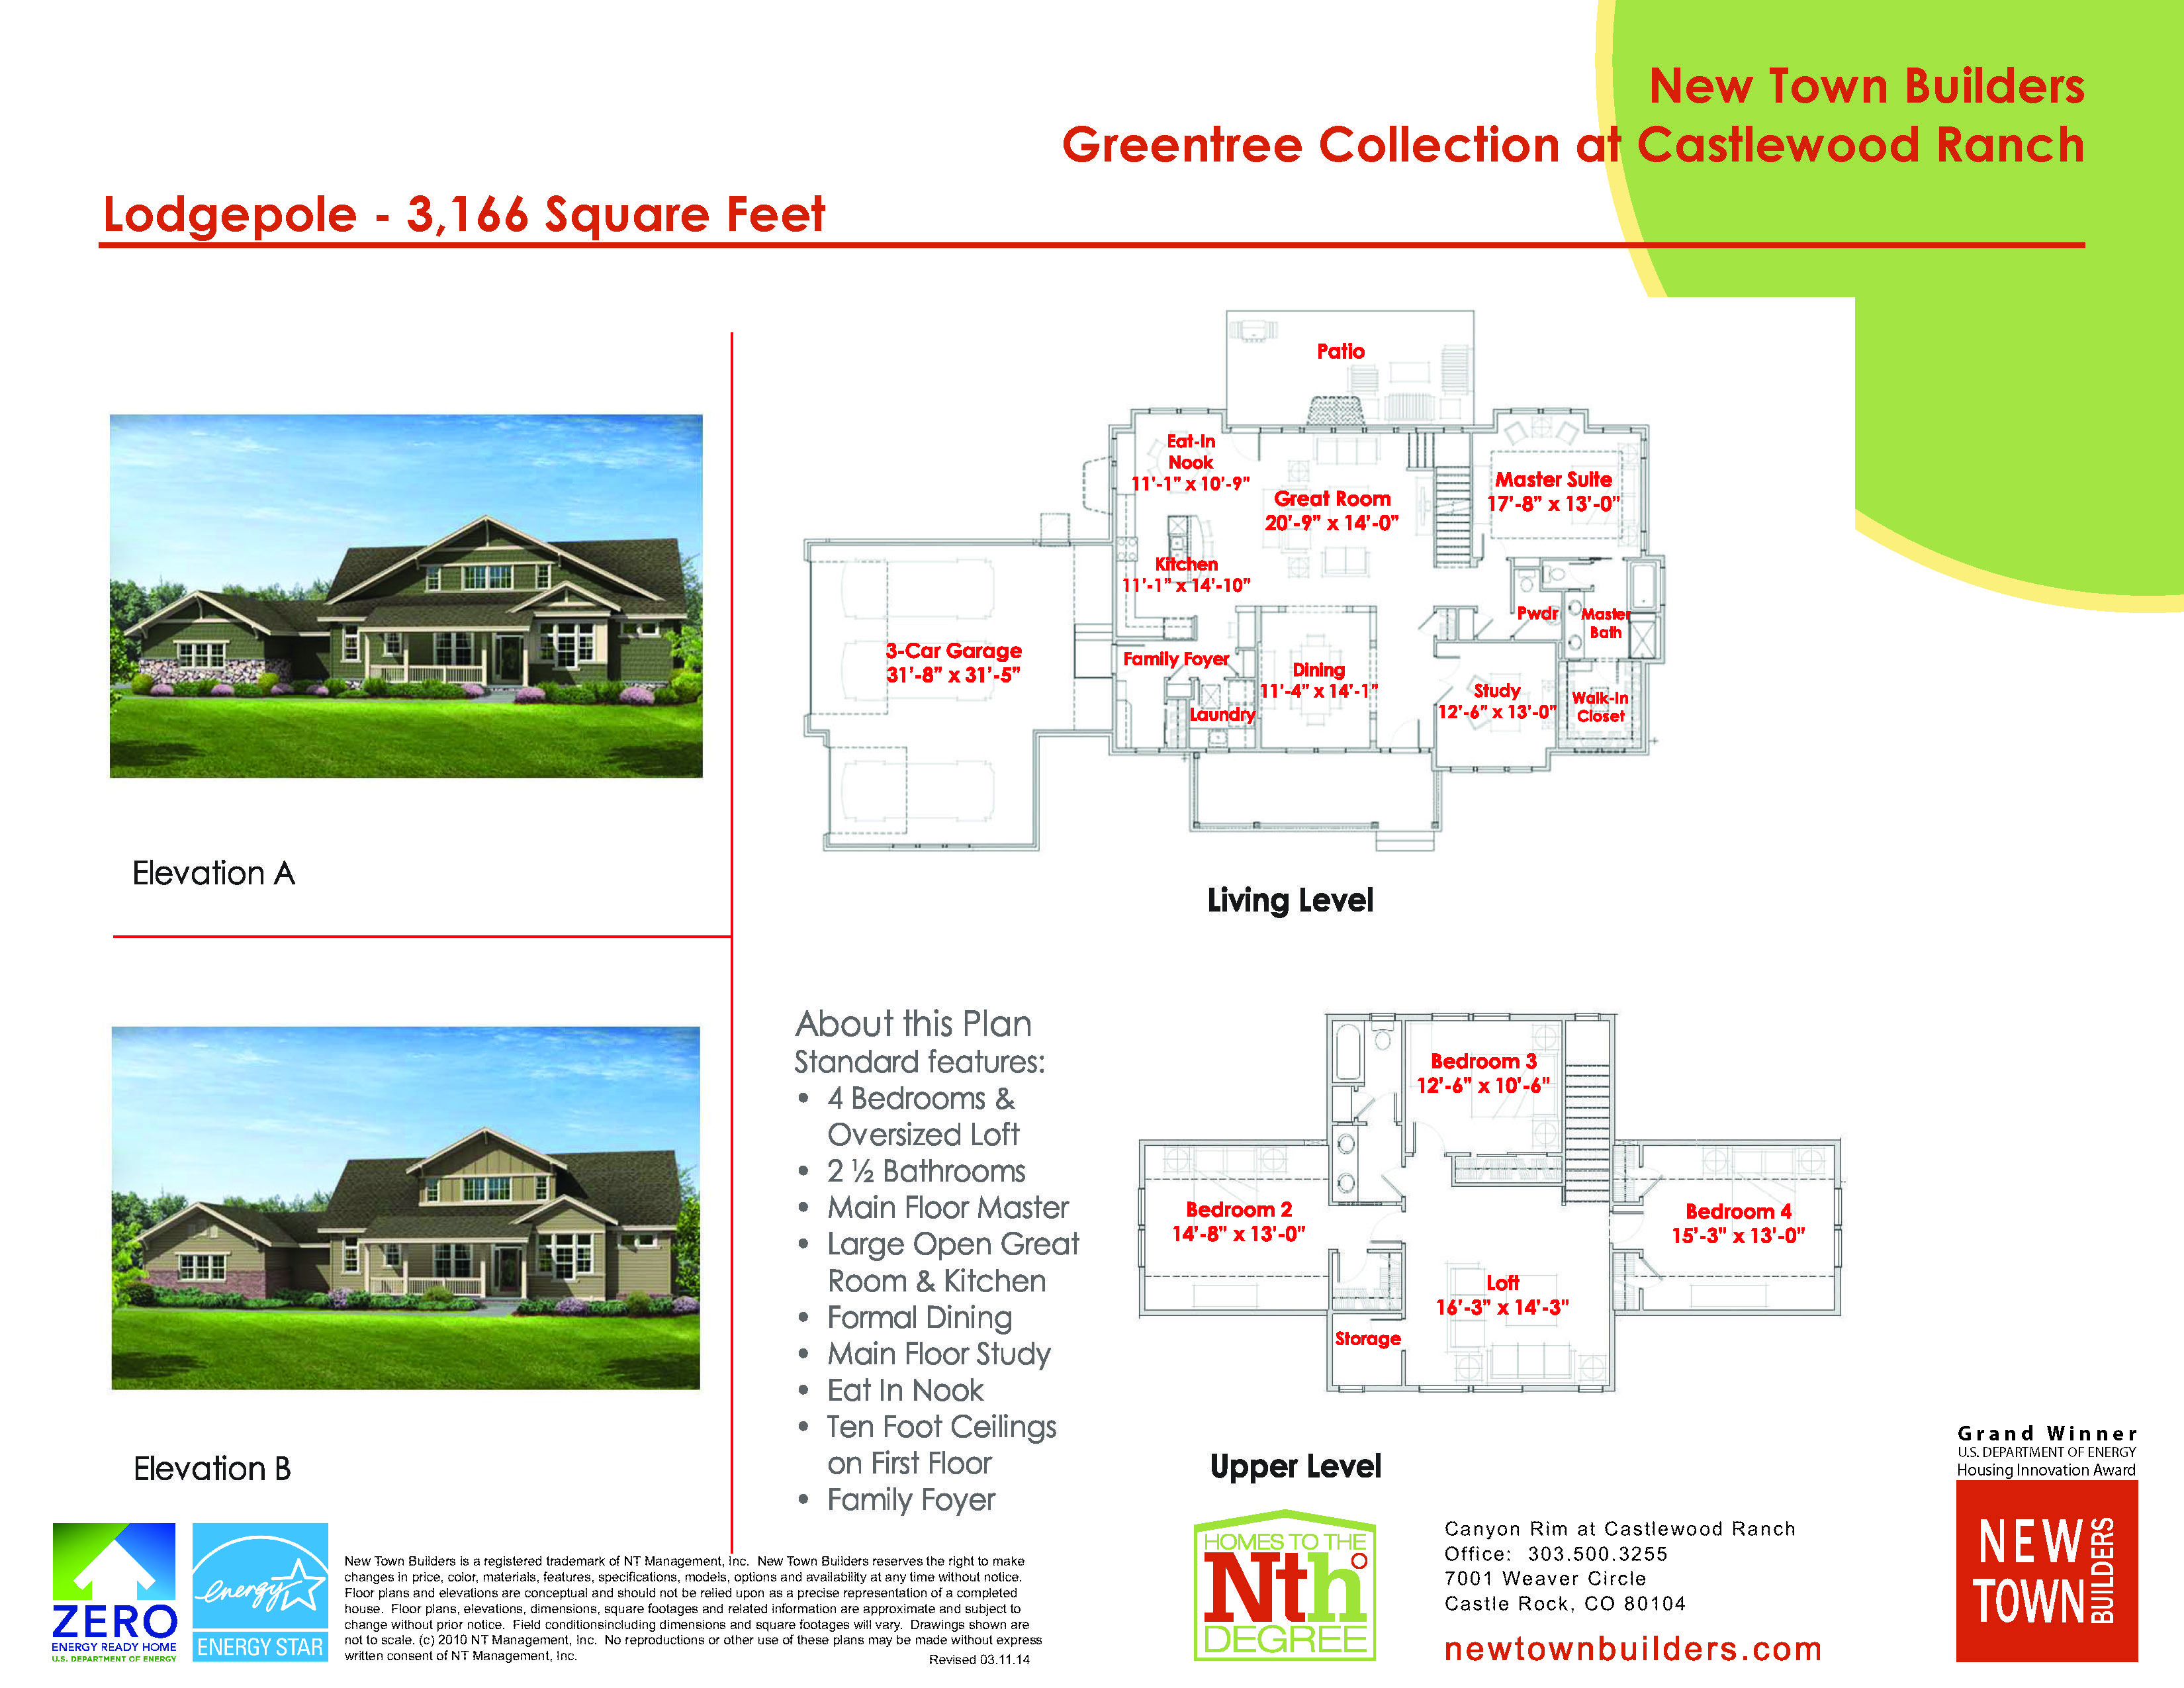 6 star master bedroom  New Town Builders in Castlewood Ranch Two Story Floor Plan for the